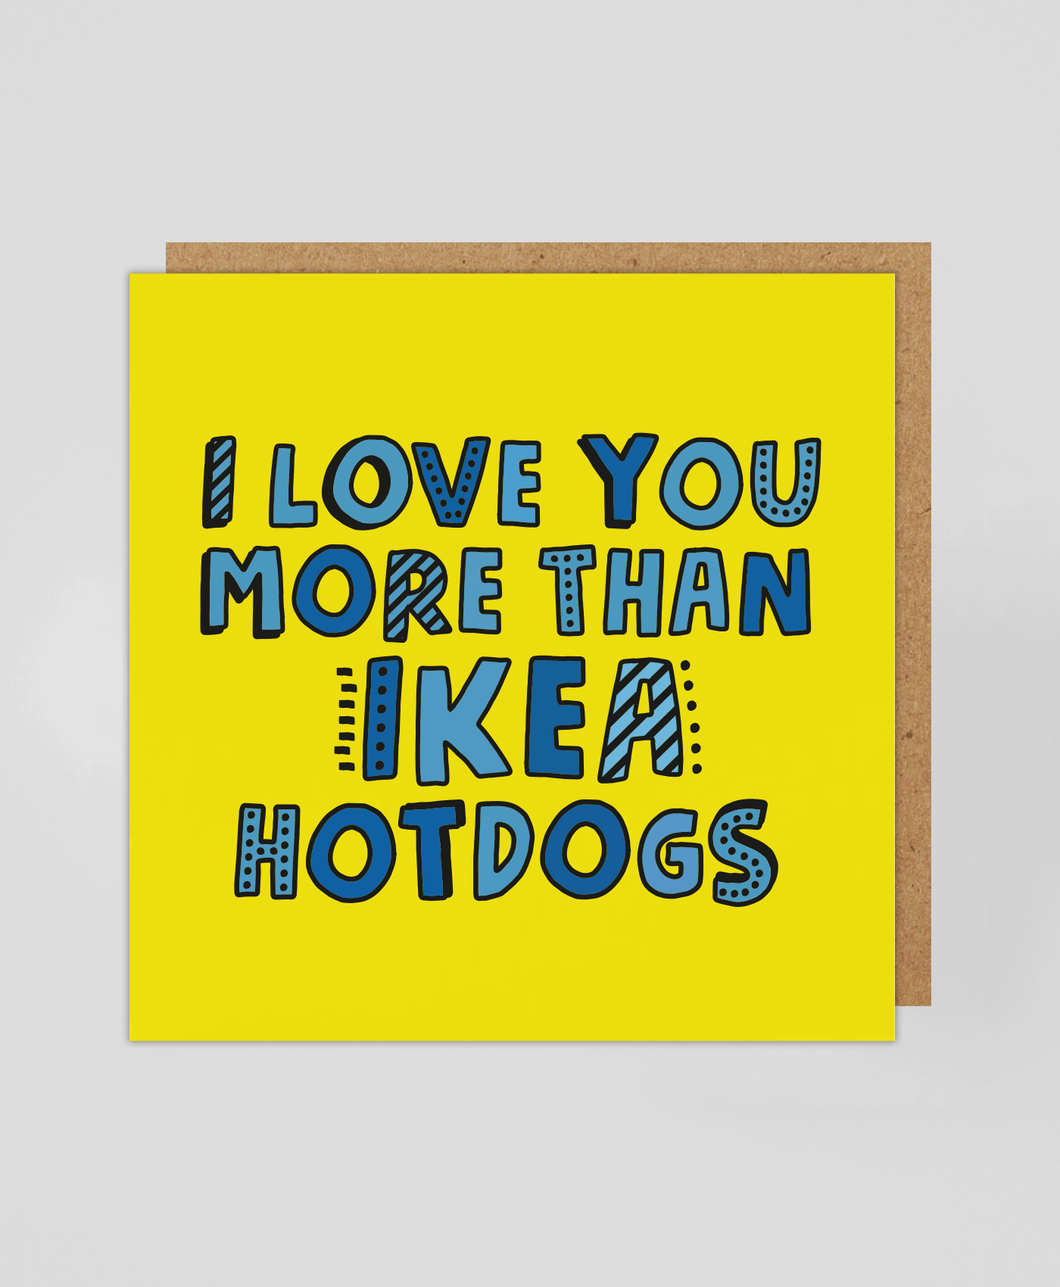 IKEA Hotdogs - Greetings Card